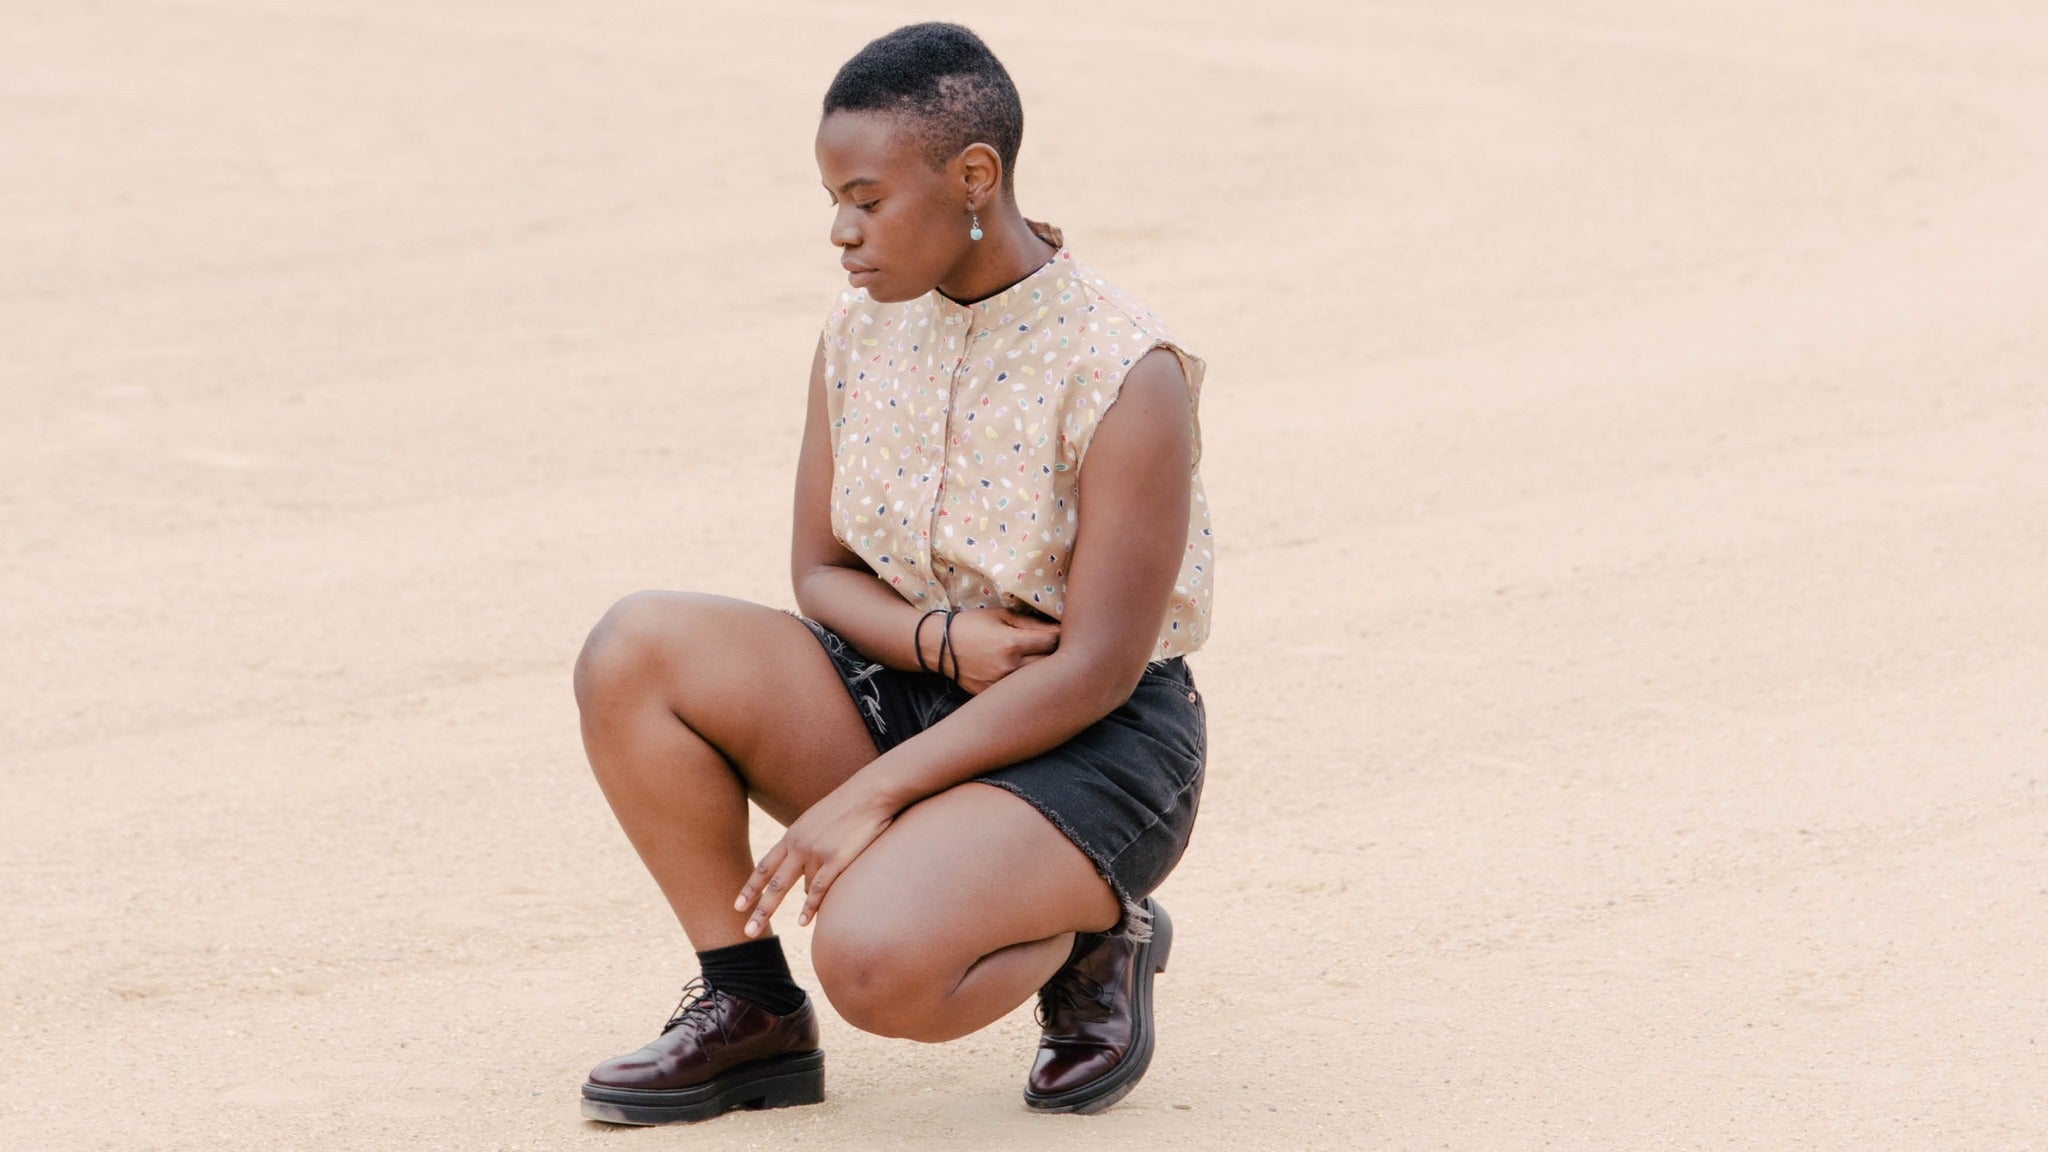 Vagabon at The Crepe Place - Santa Cruz, CA 95062